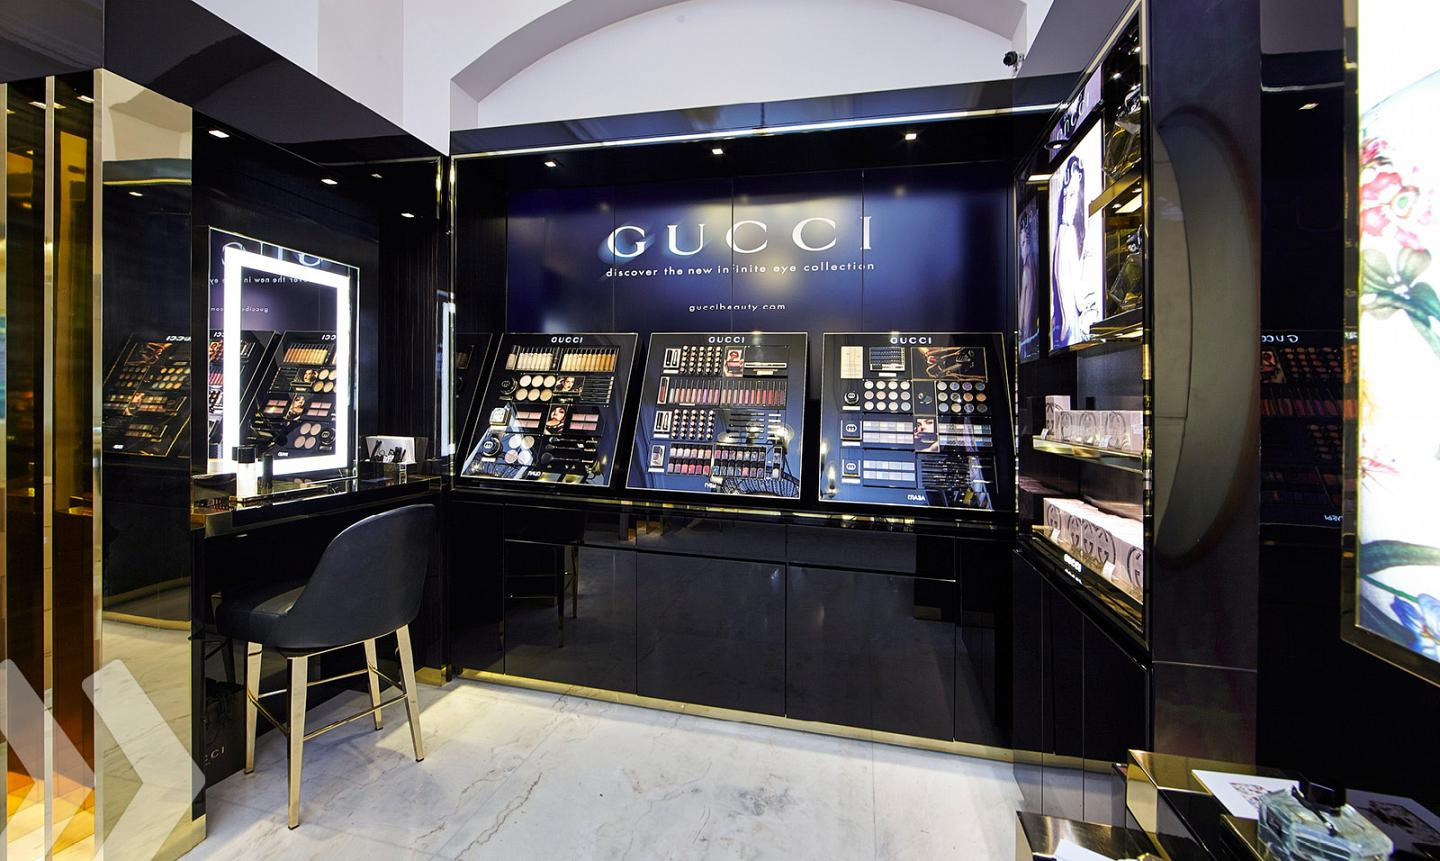 Gucci Shop in Shop 03